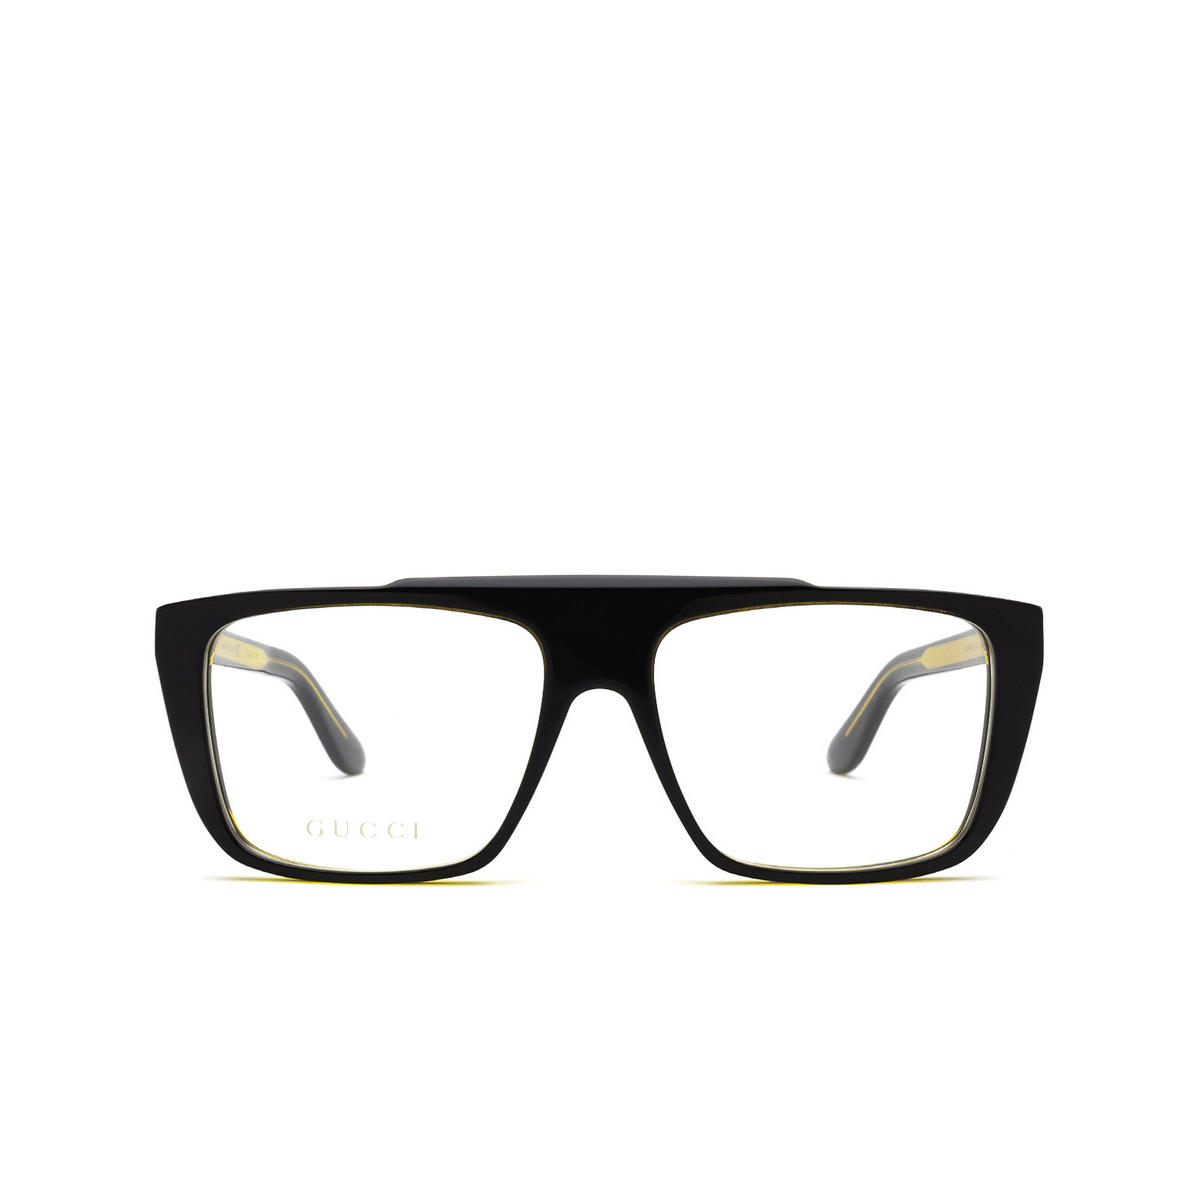 Gucci® Square Eyeglasses: GG1040O color Black & Amber 001 - front view.